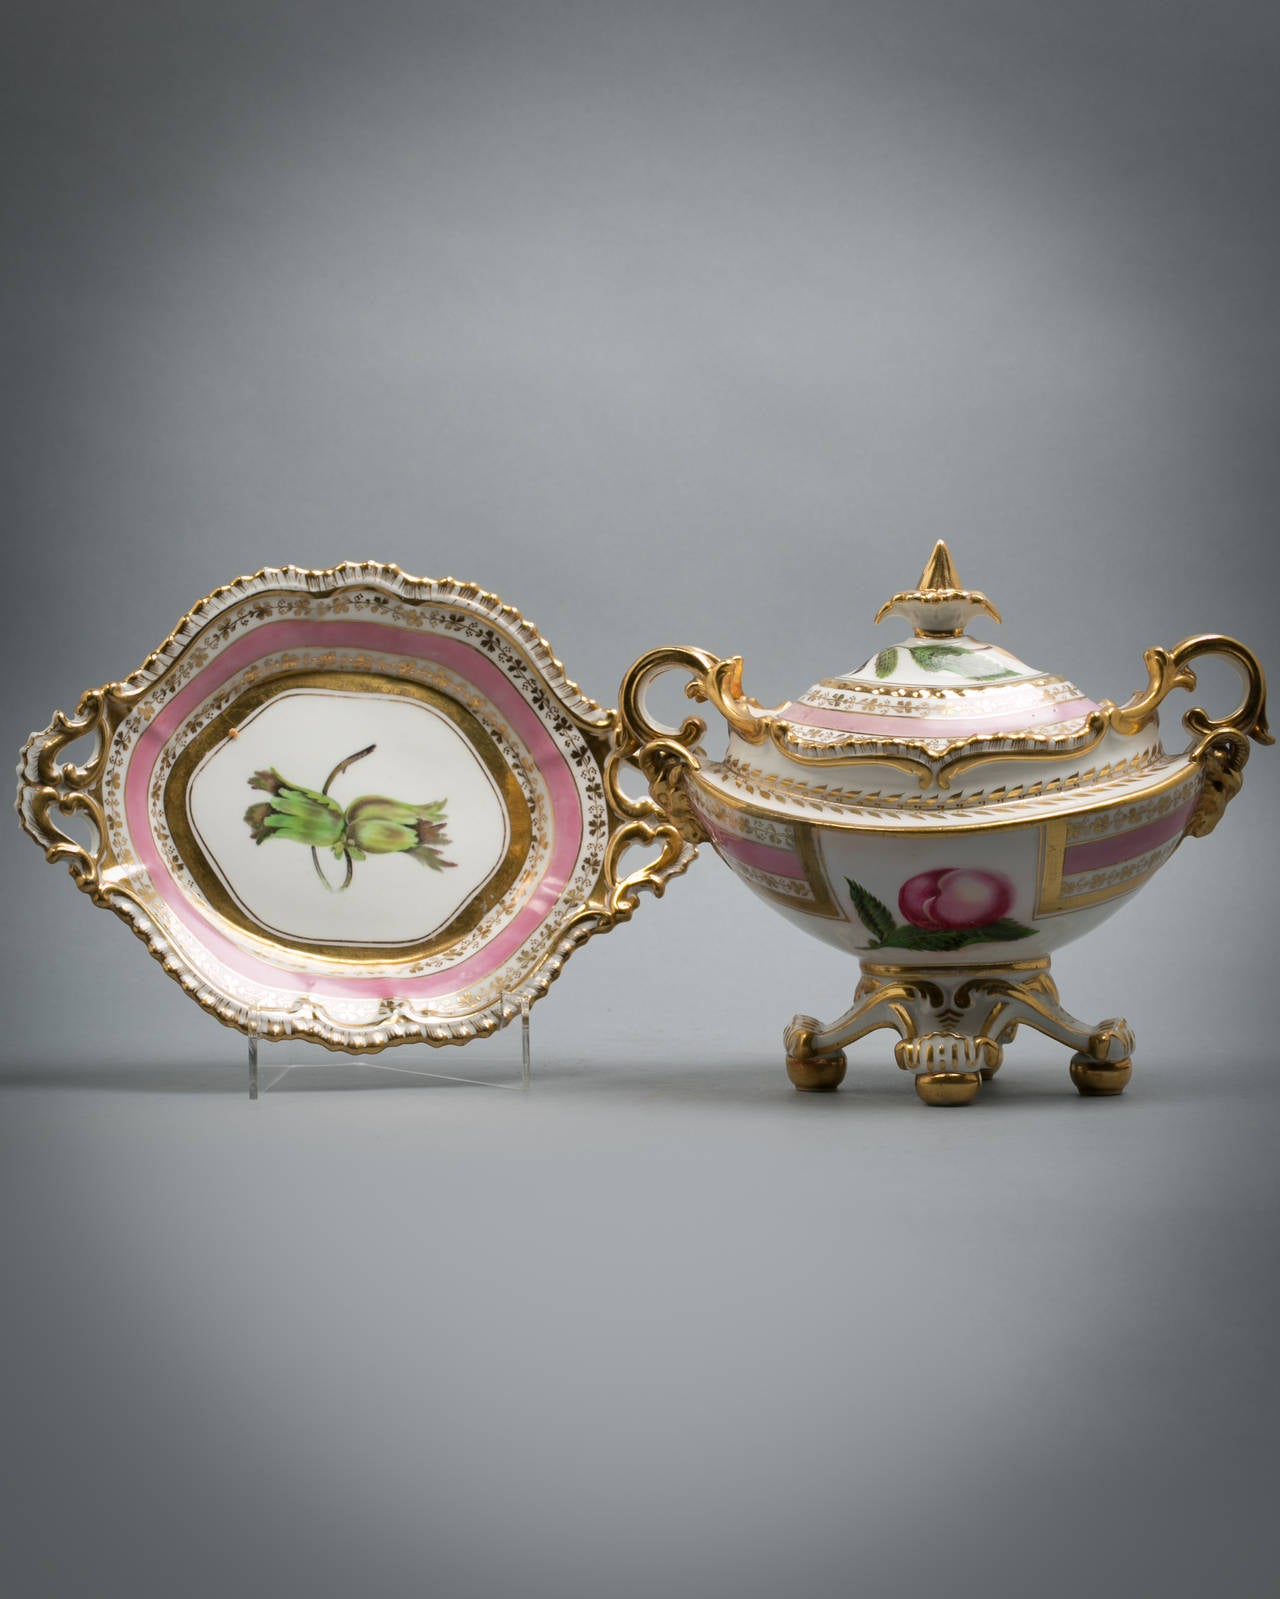 English Porcelain Fruit Service, Chamberlain Worcester, circa 1820 For Sale 6